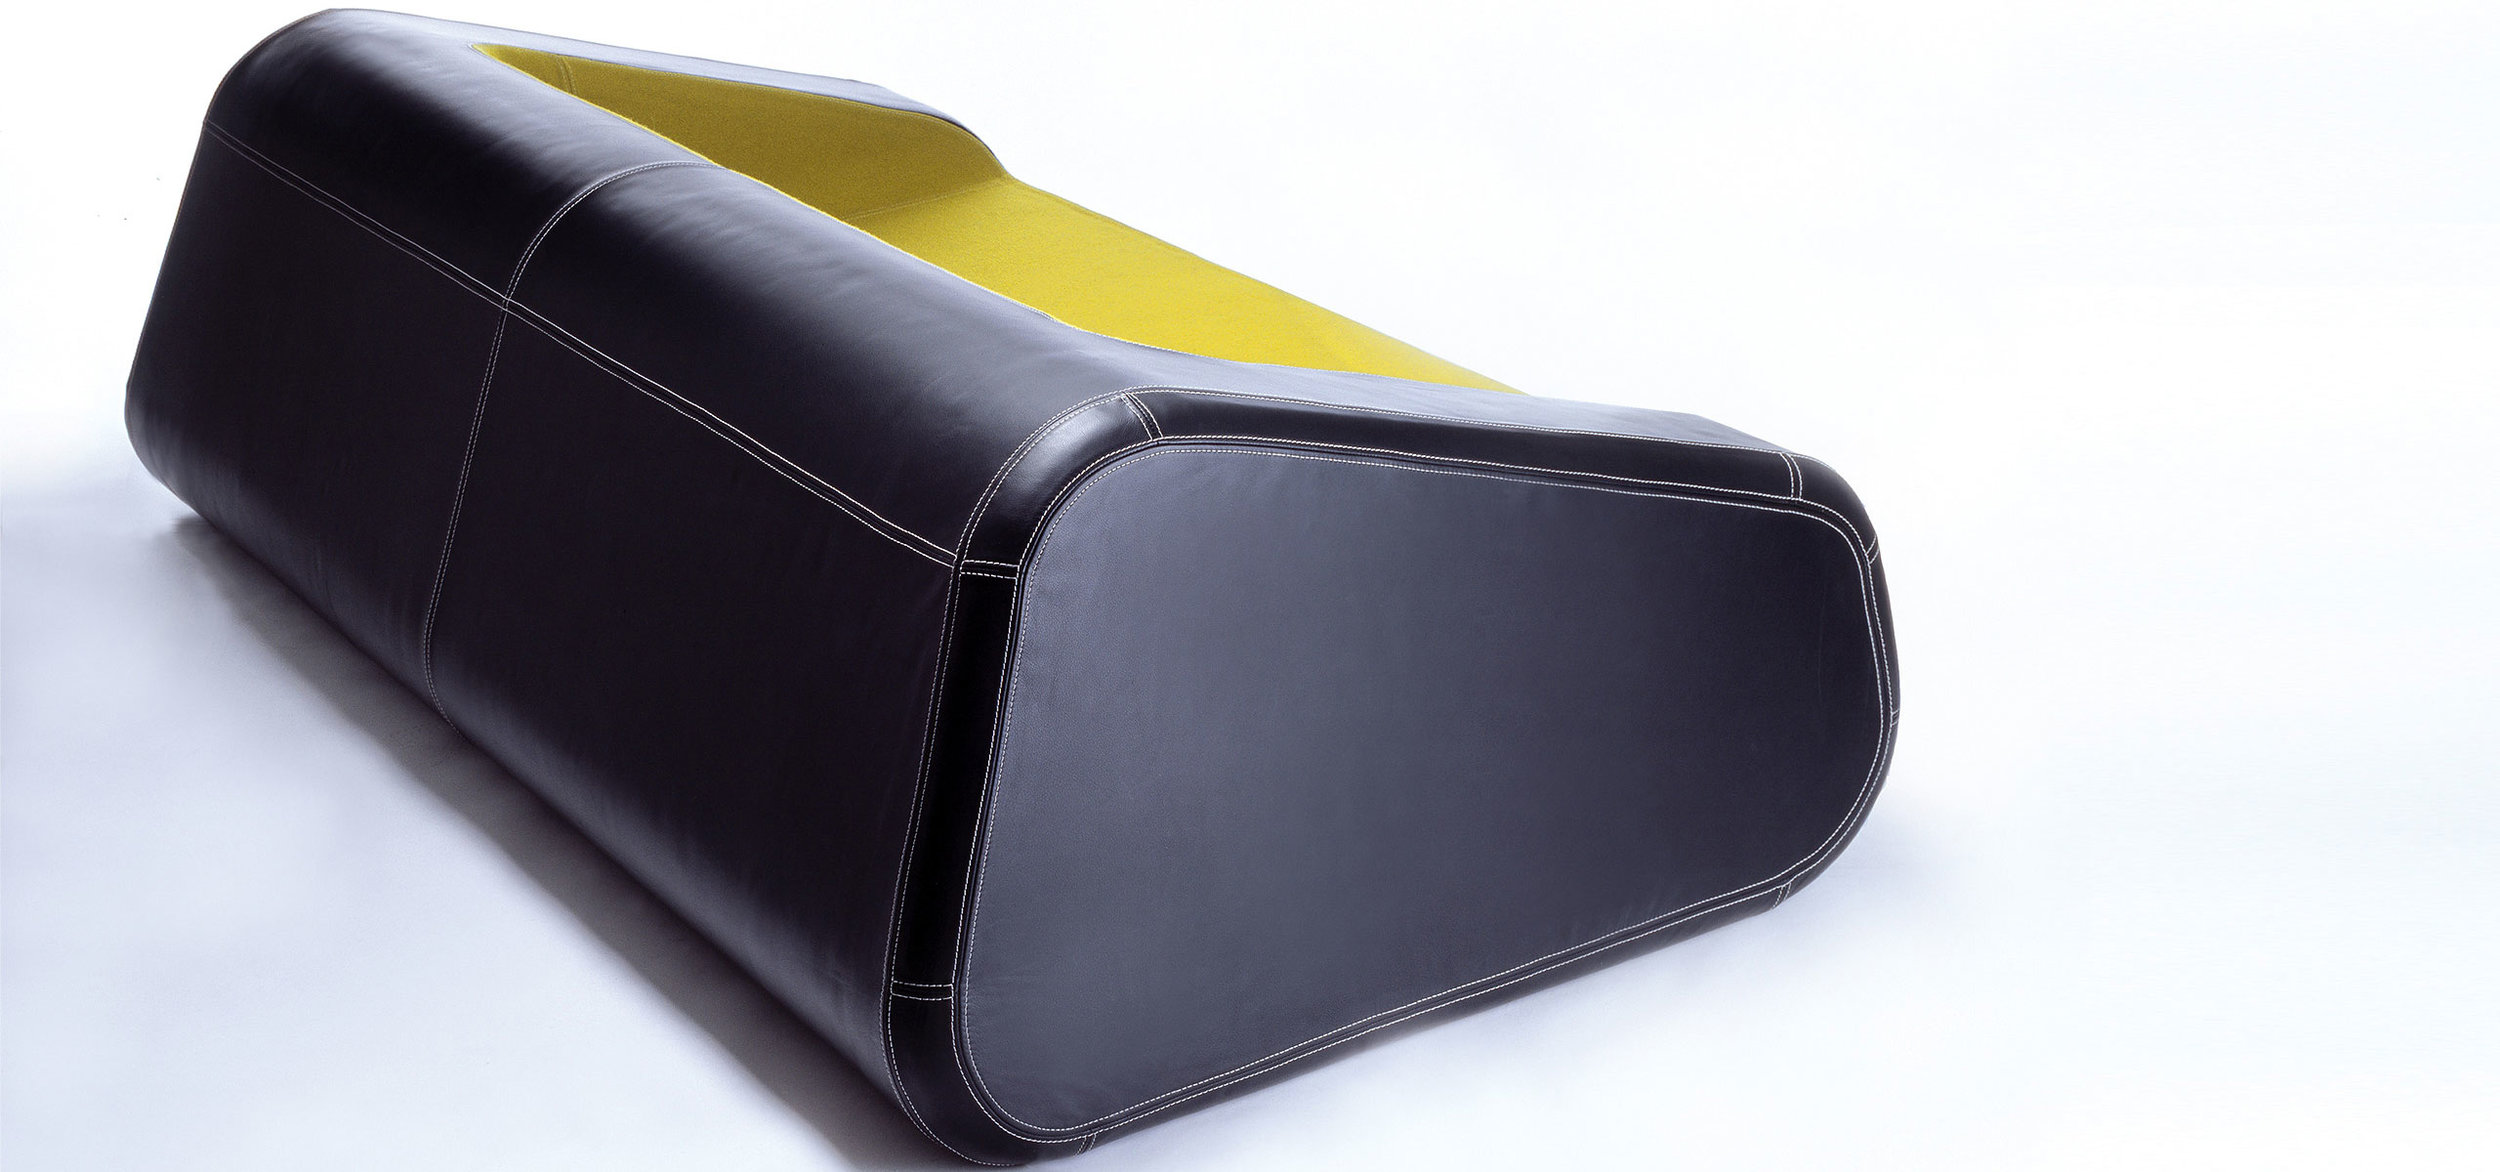 Foam, fabric and leather were used as the primary material for the furniture design of the mormor couch.